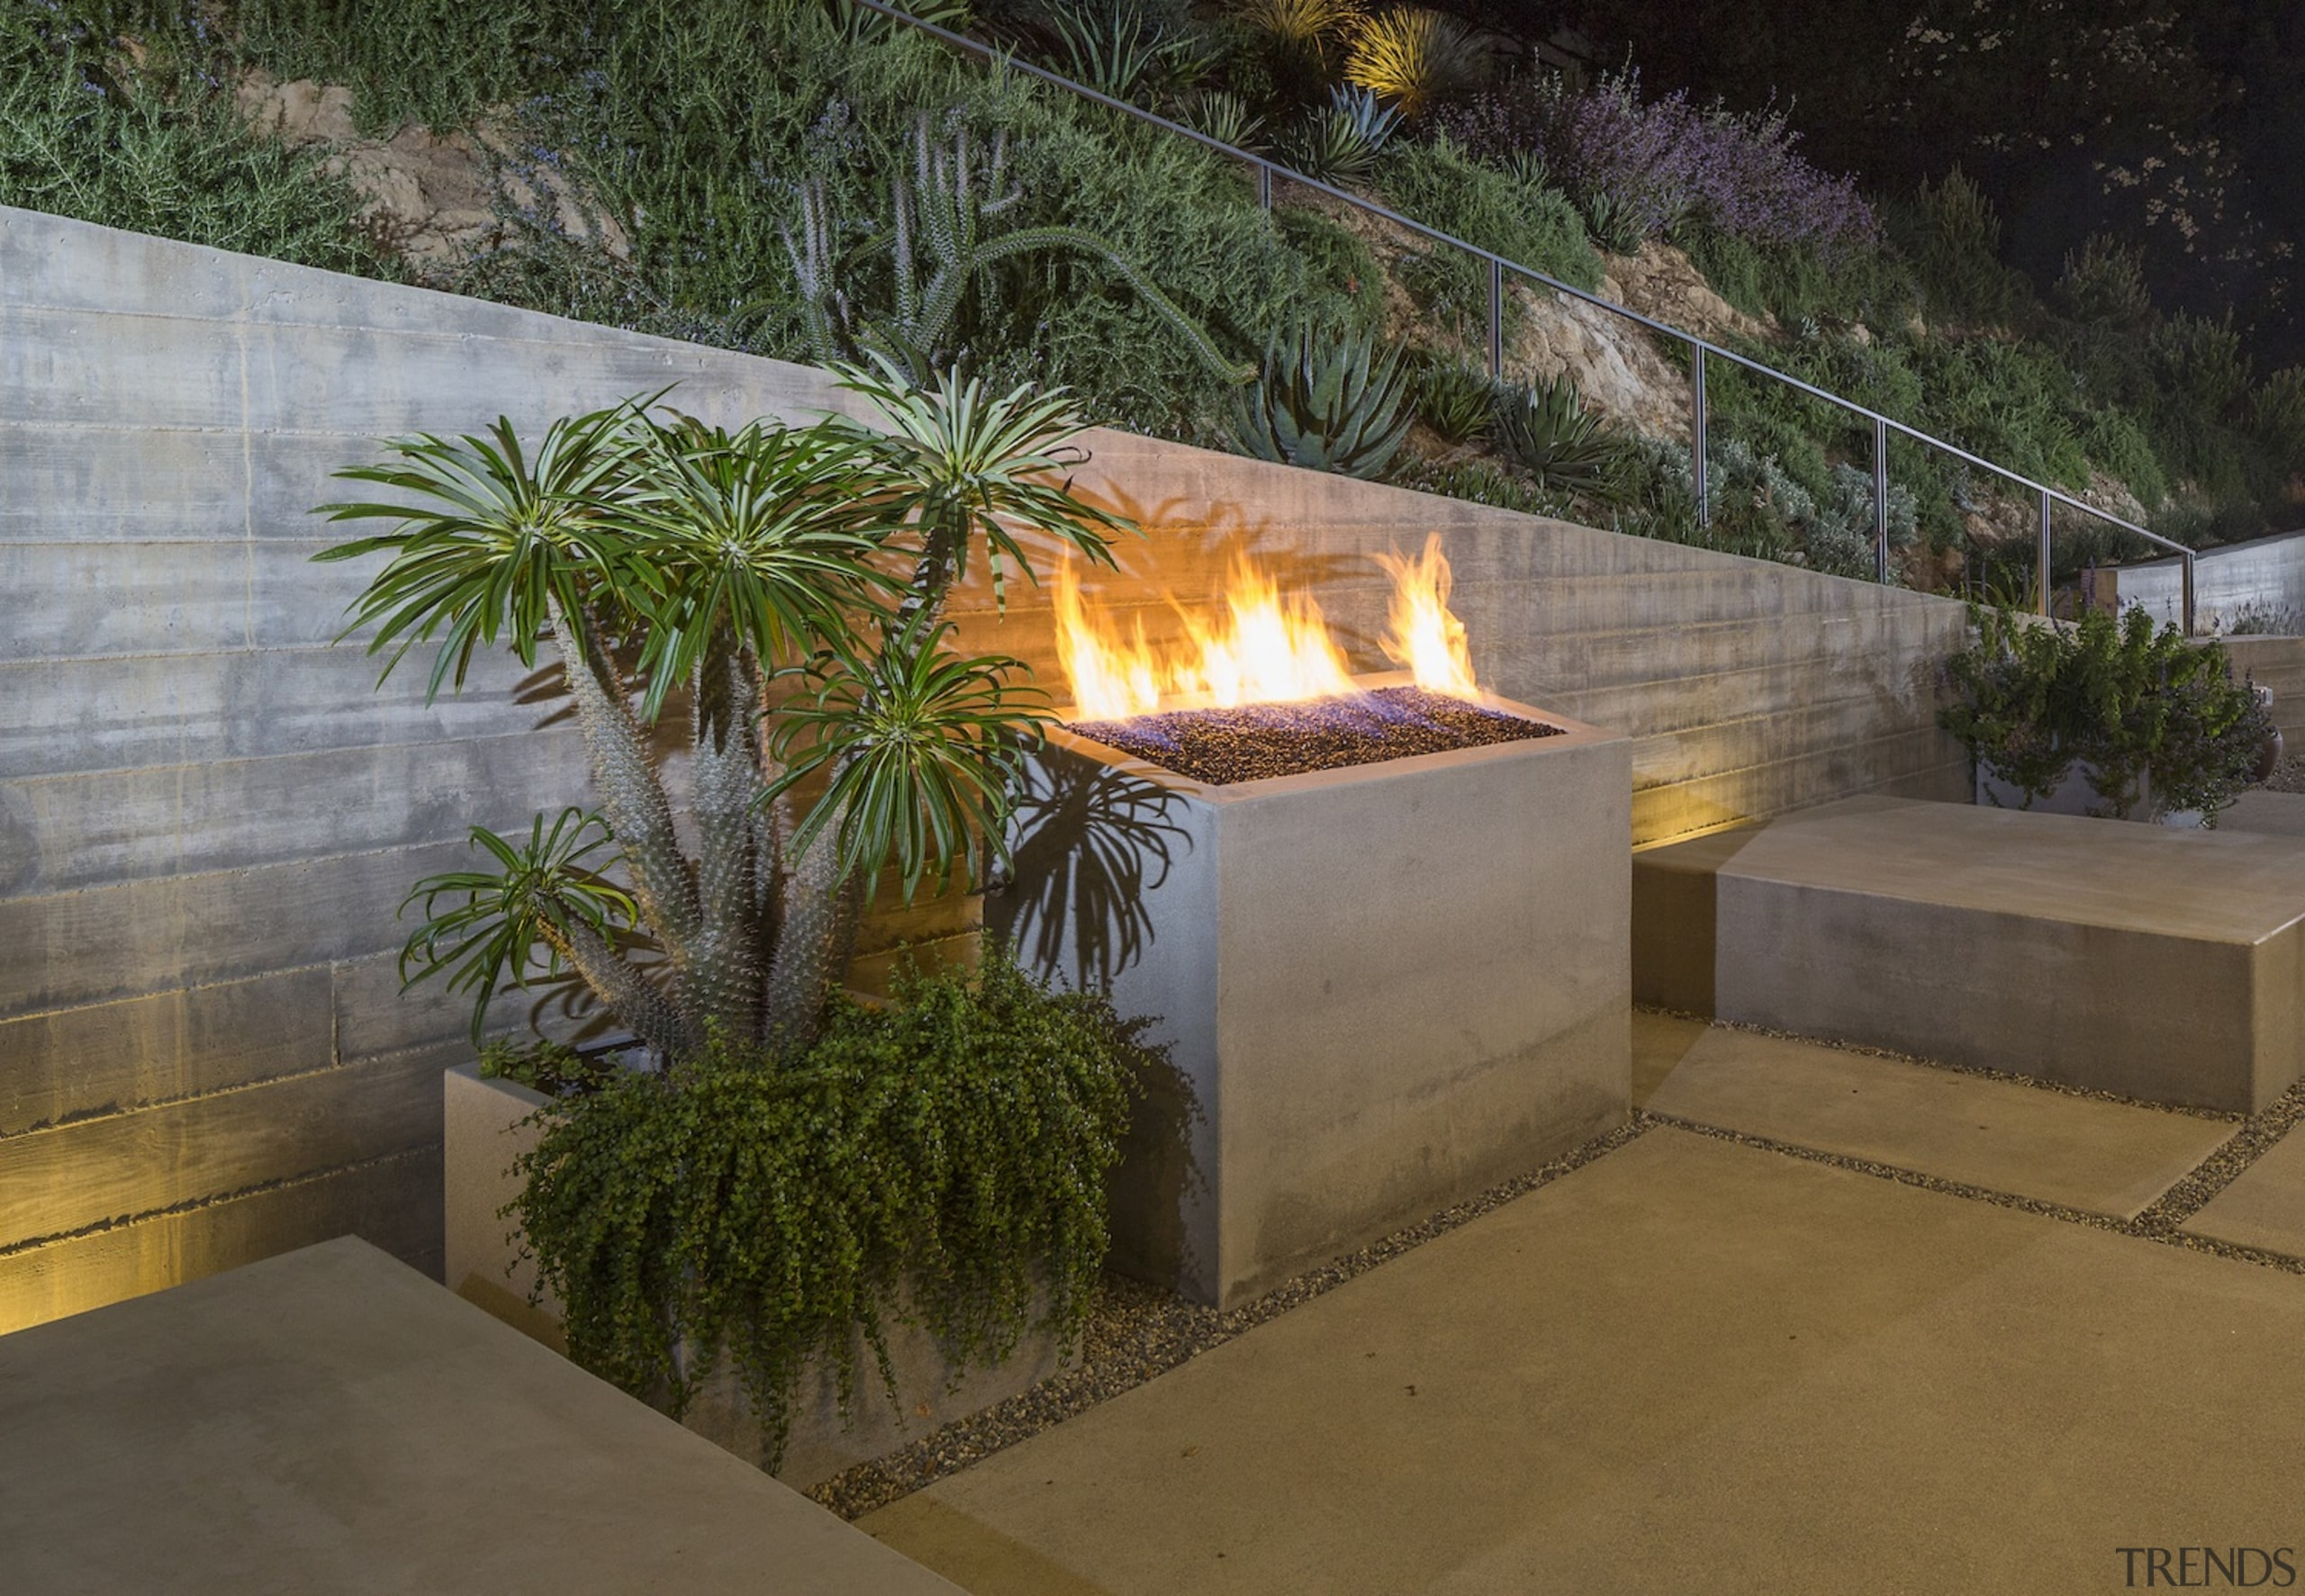 Anx View 59 - landscape | landscaping | landscape, landscaping, lighting, outdoor structure, brown, gray